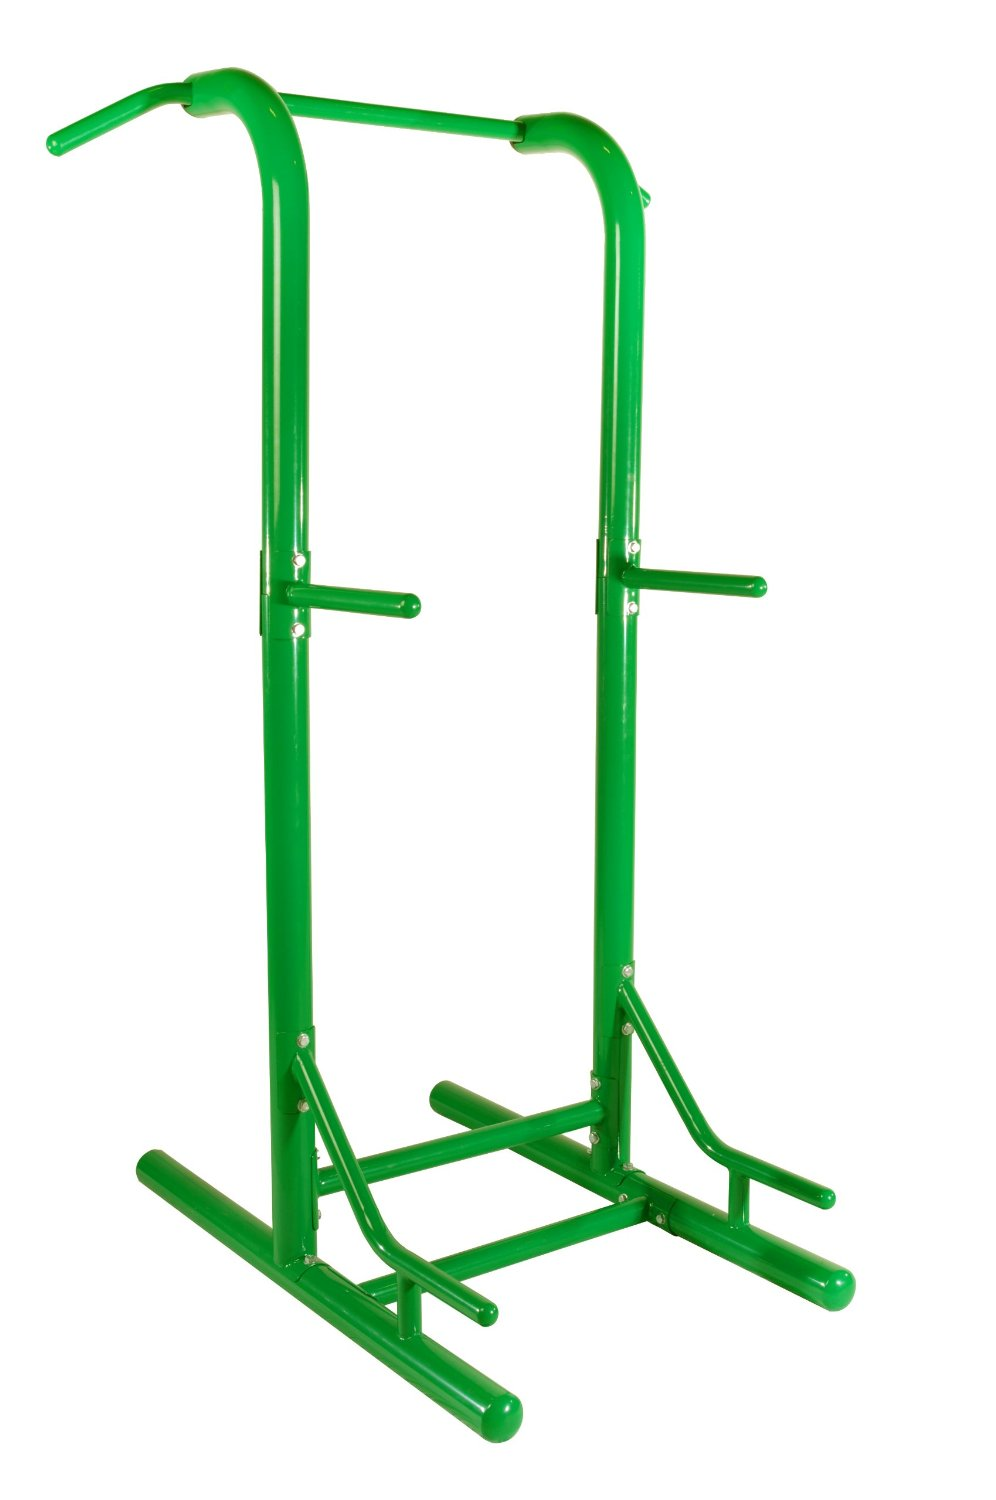 Buy Stamina 1690 Power Tower in Cheap Price on Alibaba.com